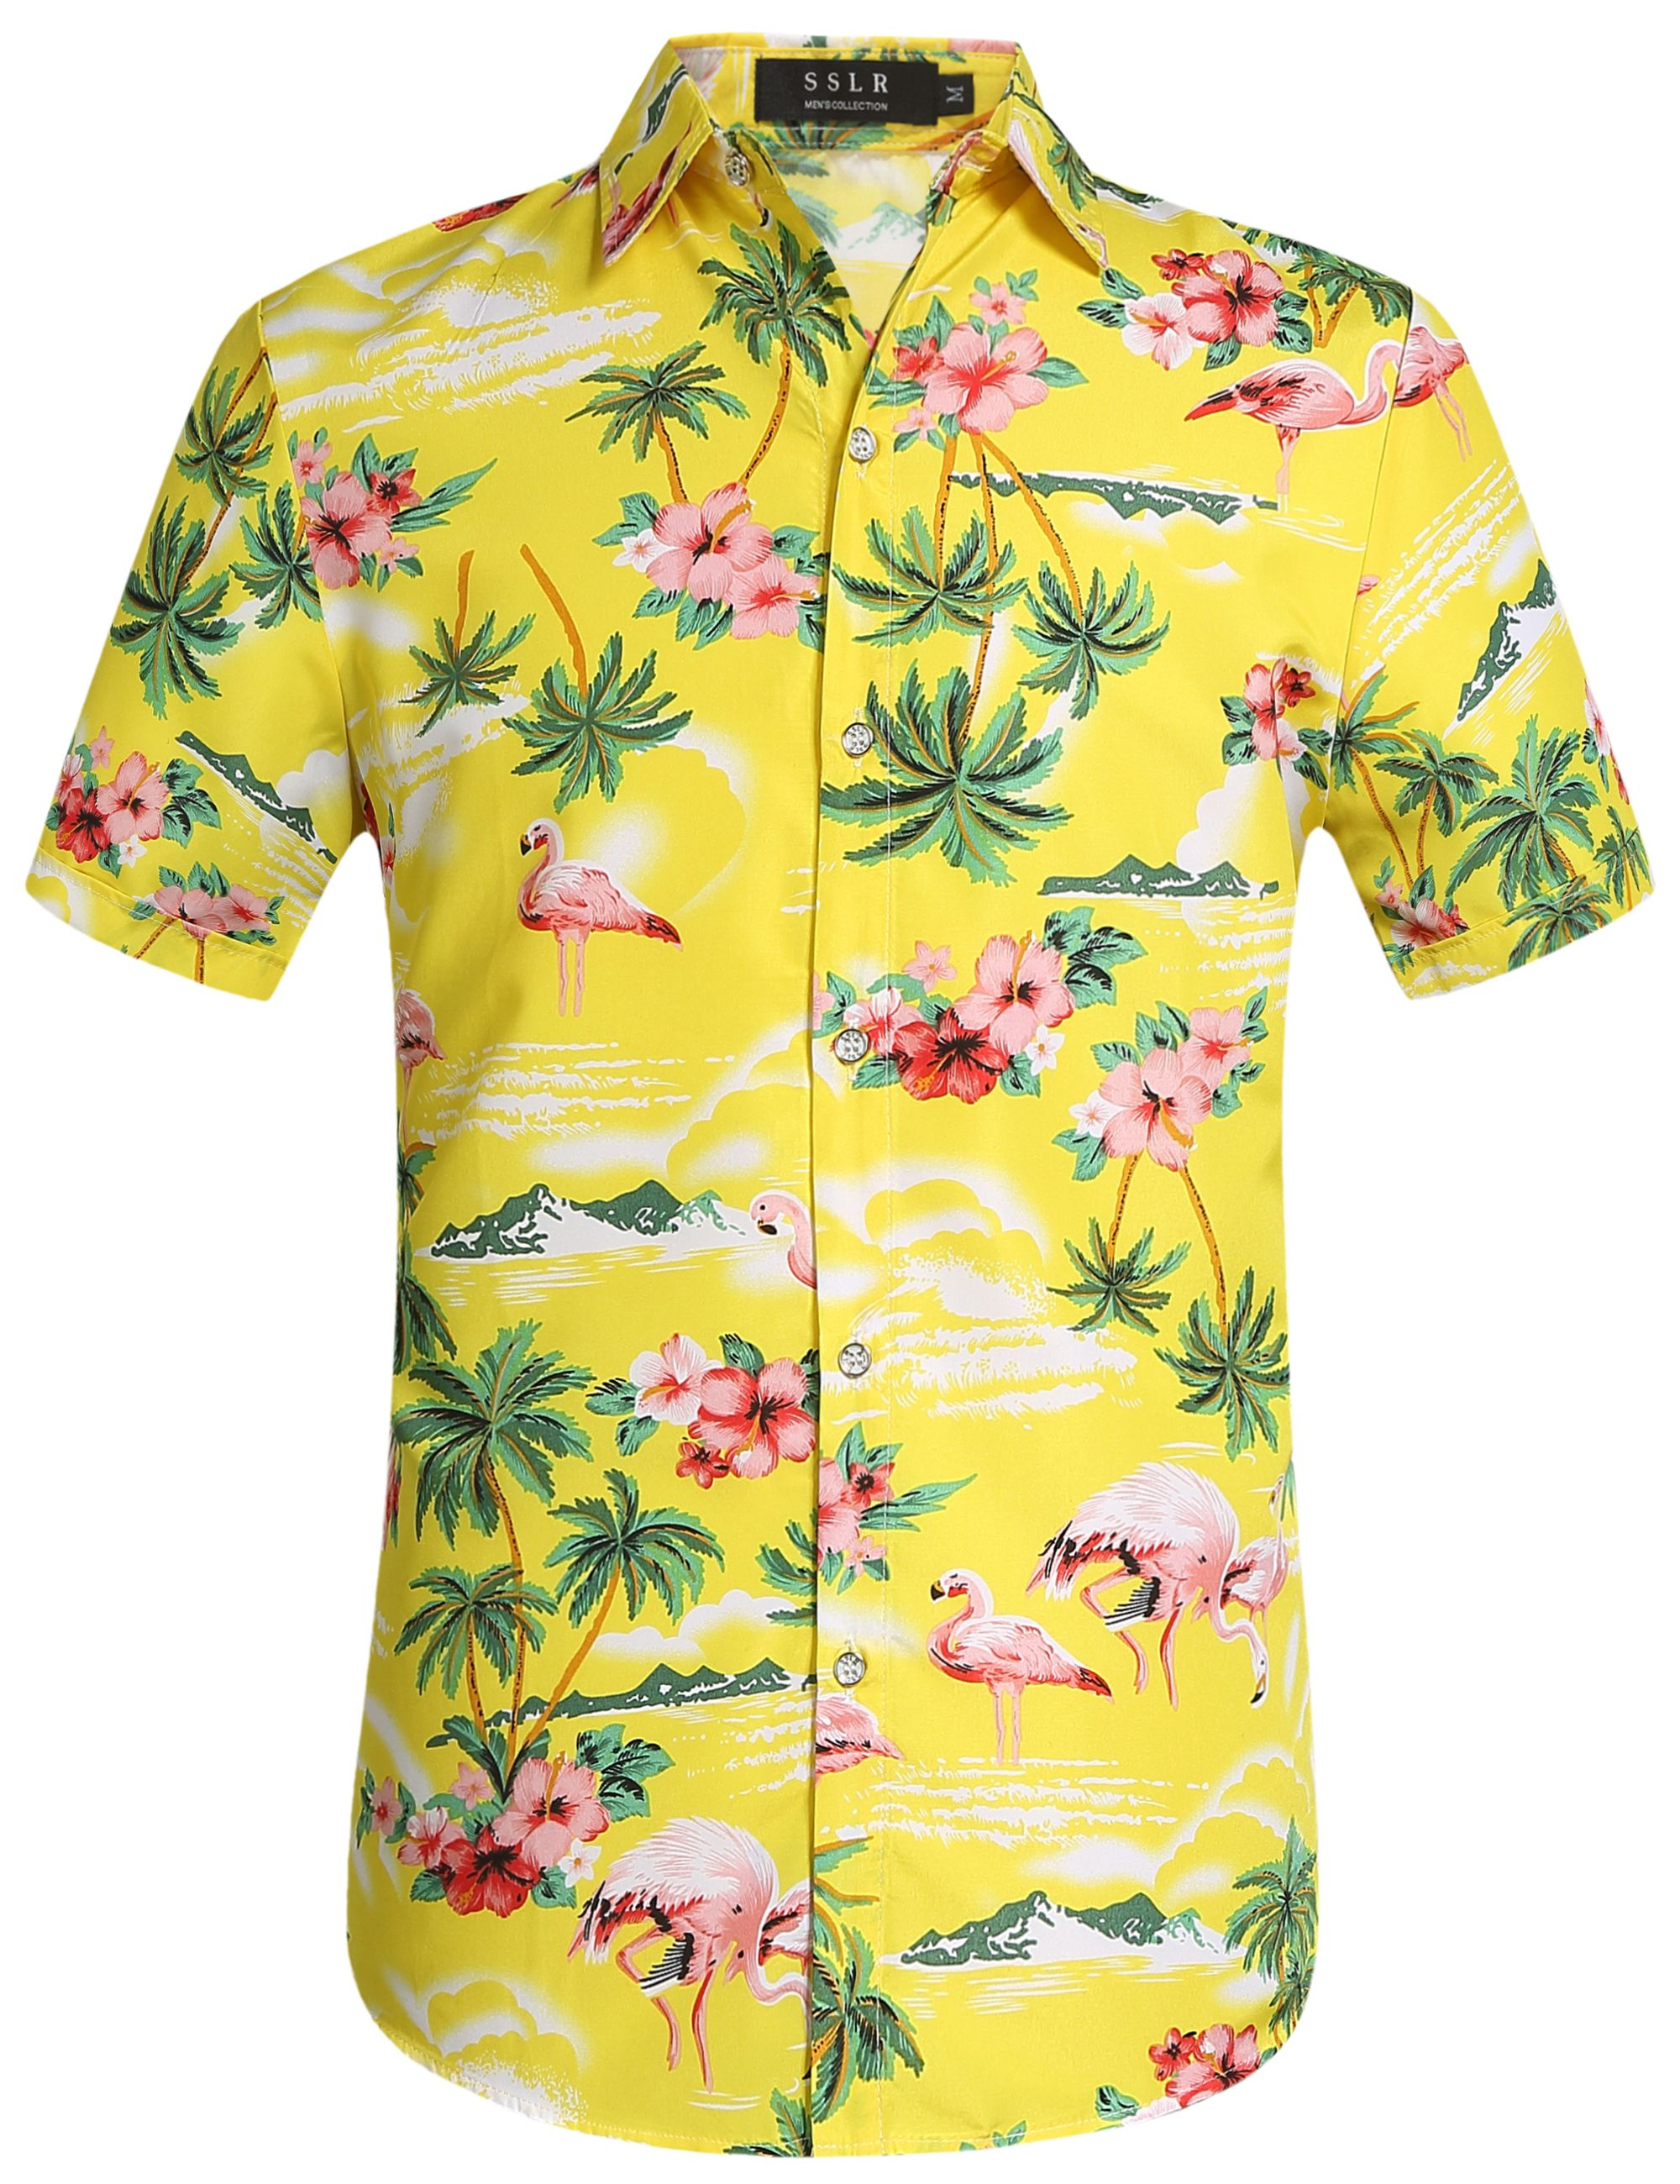 Mens Hawaiian Printed Shirt Mens Summer Beach Short Sleeve Floral Shirts Show,4XL